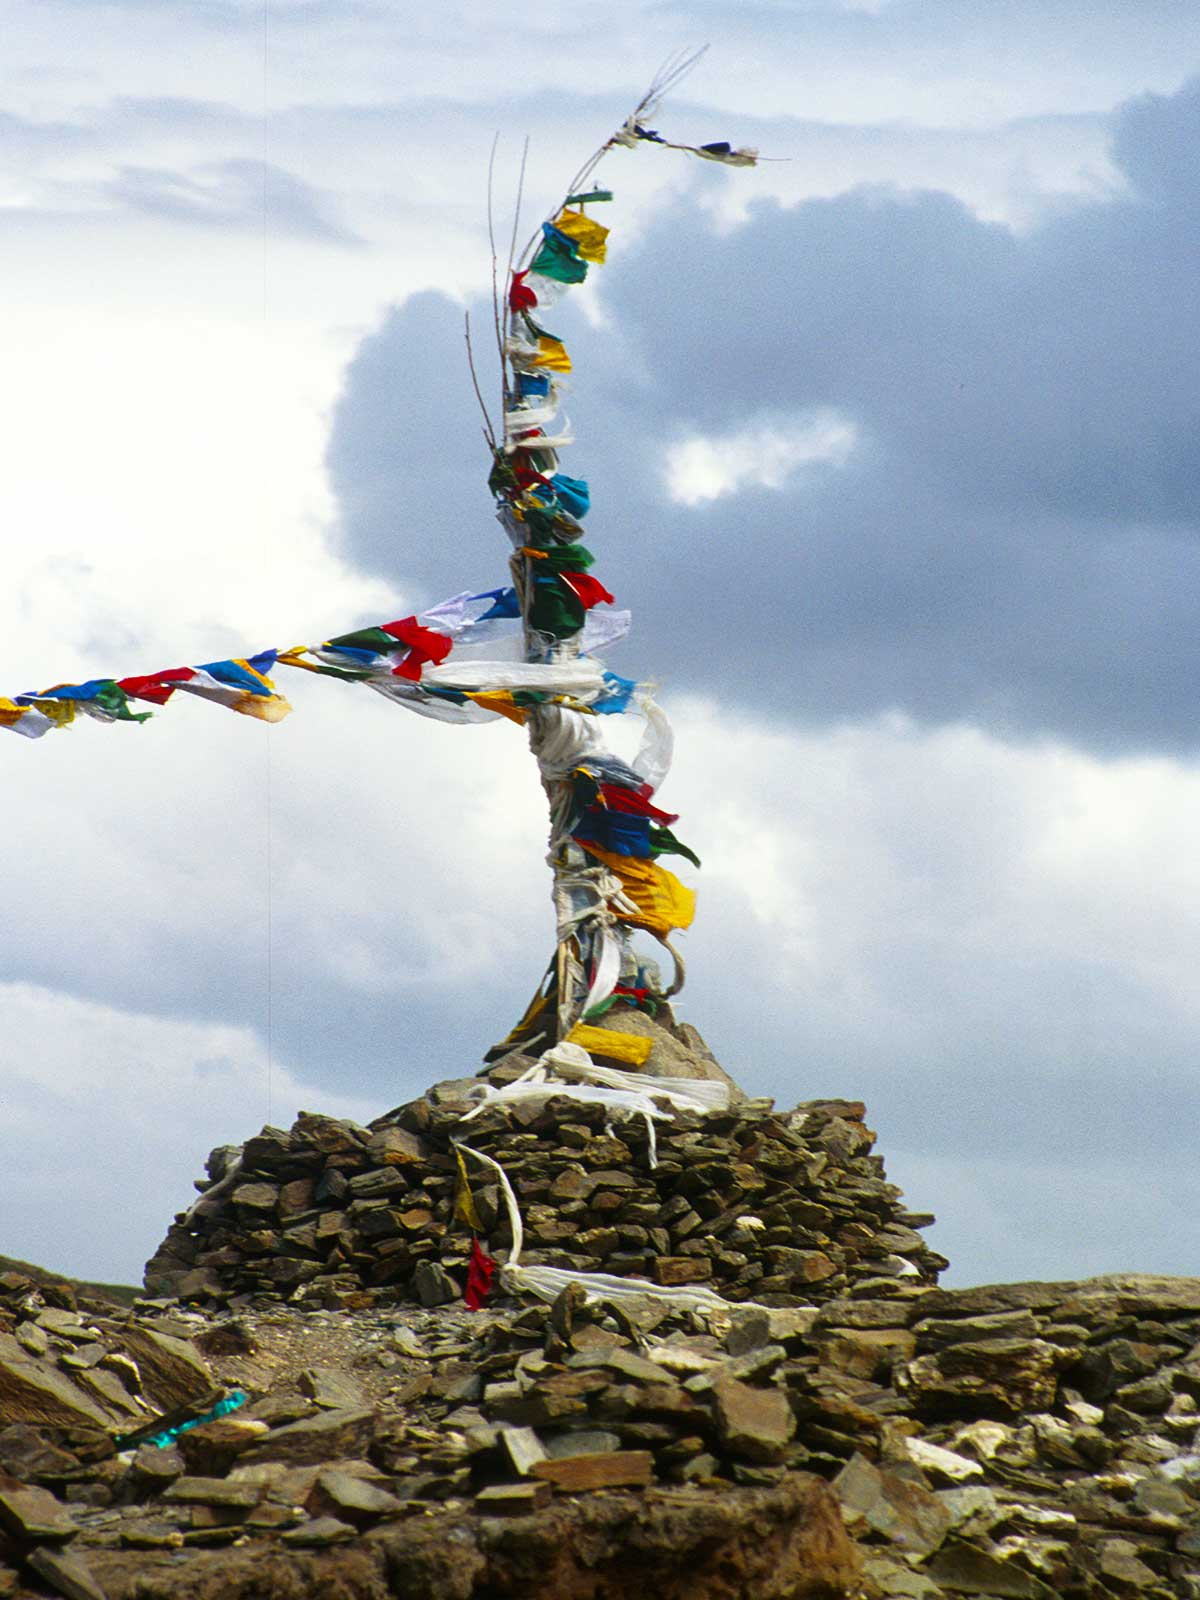 Prayer flags on a mountain pass | Mount Everest Tibet Photo Journal | Steven Martin | Study Abroad Journal